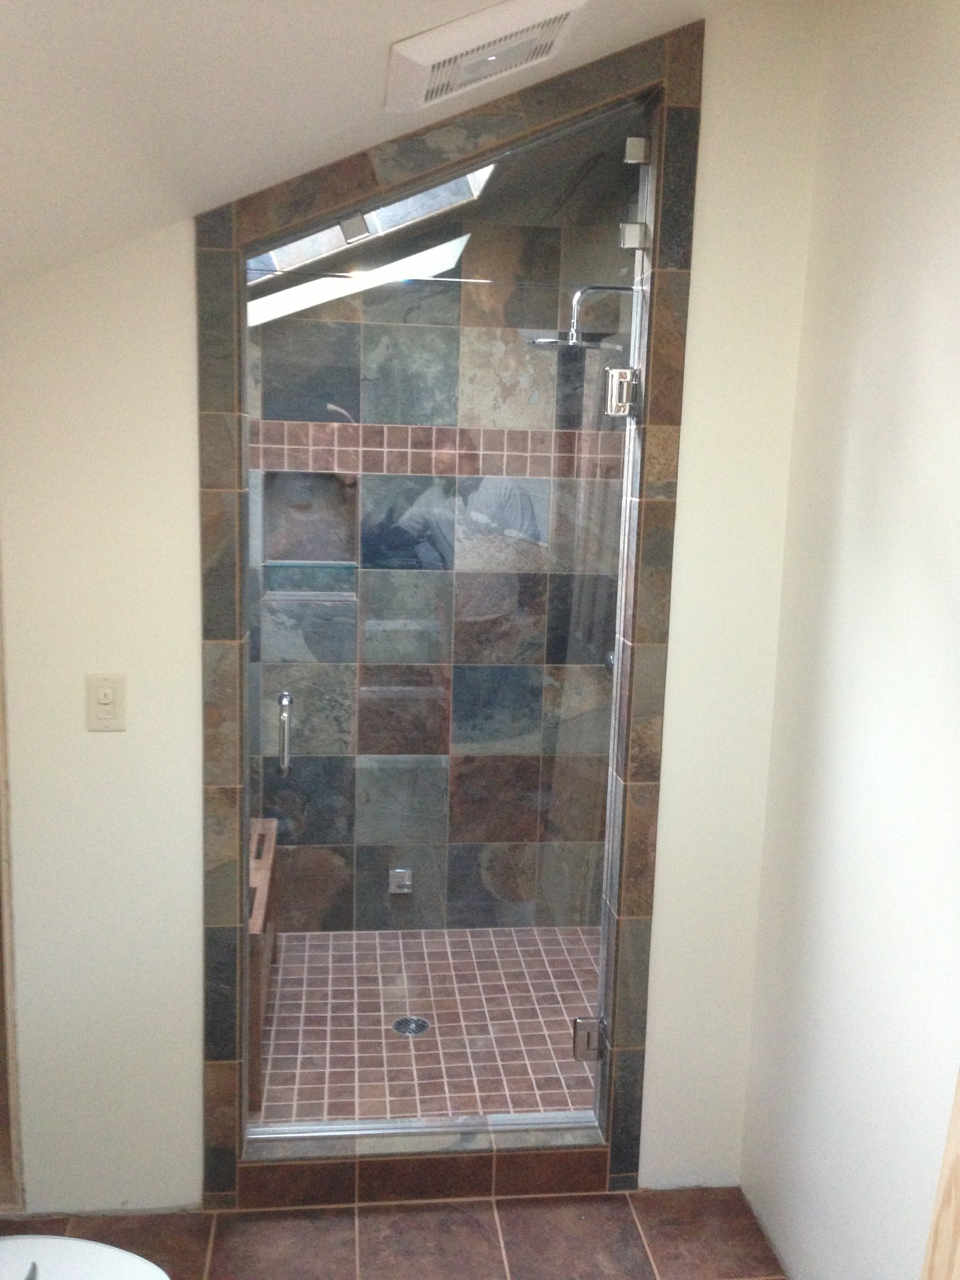 Shower Door with cool granite tiling in the back